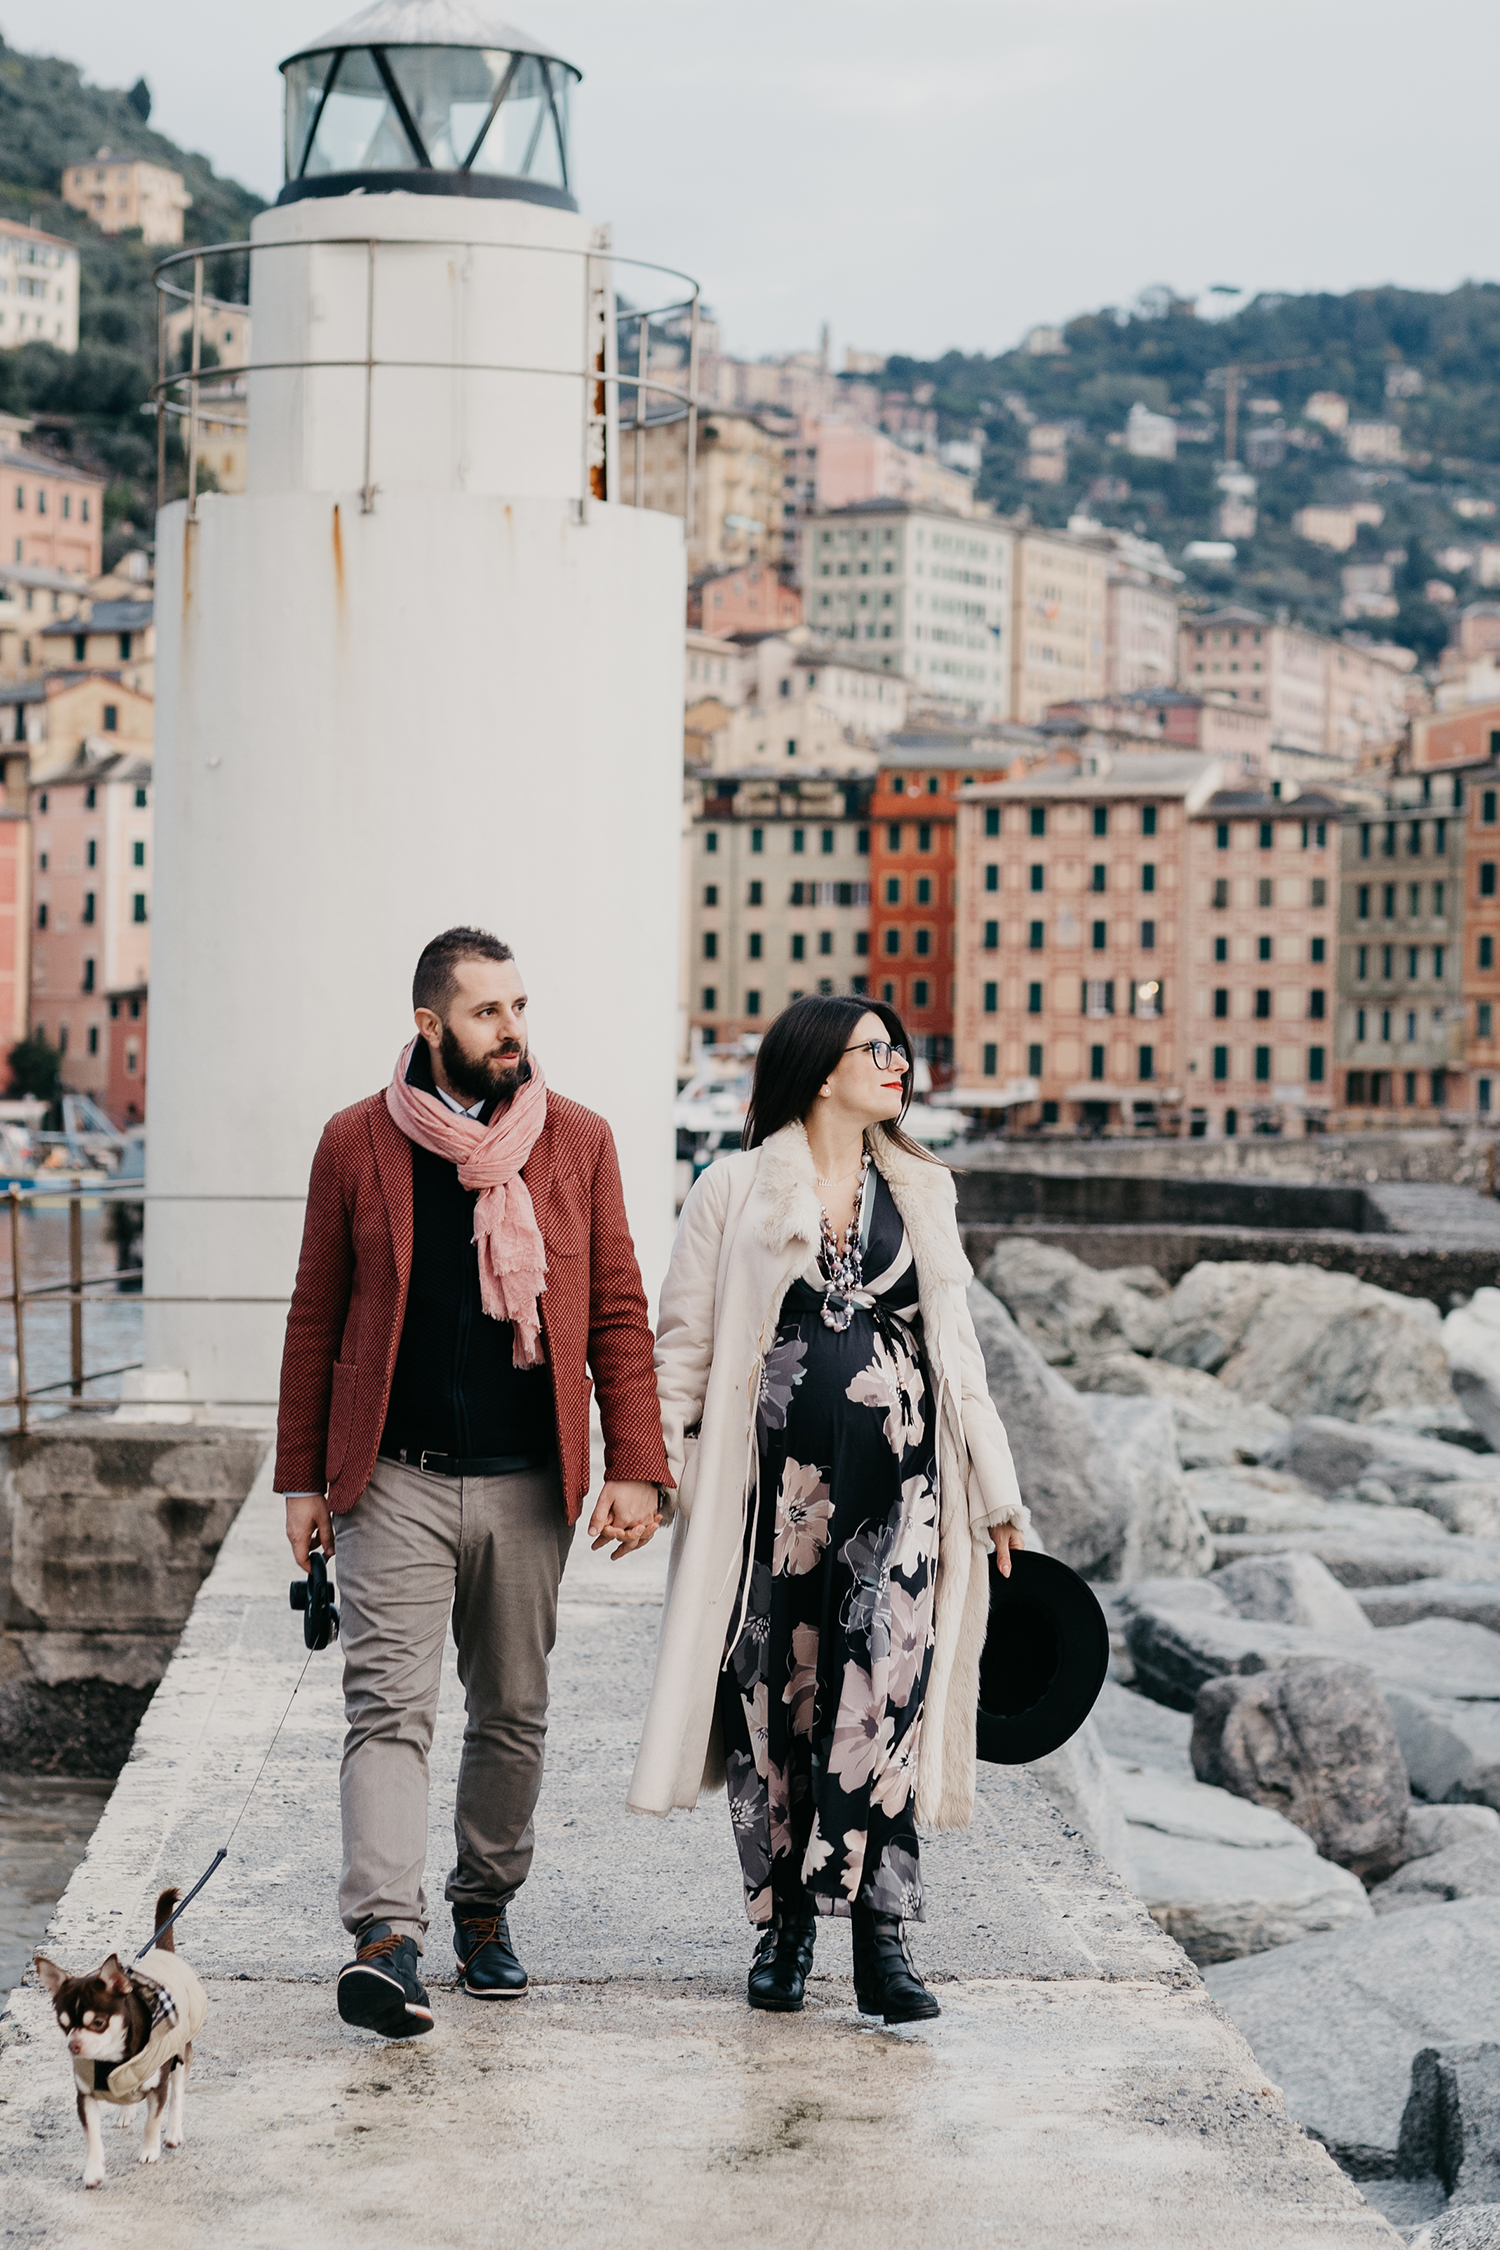 Rebecca Rinaldi maternity photographer in Italy. maternity photo shoot in Camogli, Couple walking  on the peer with chiwawa dog.